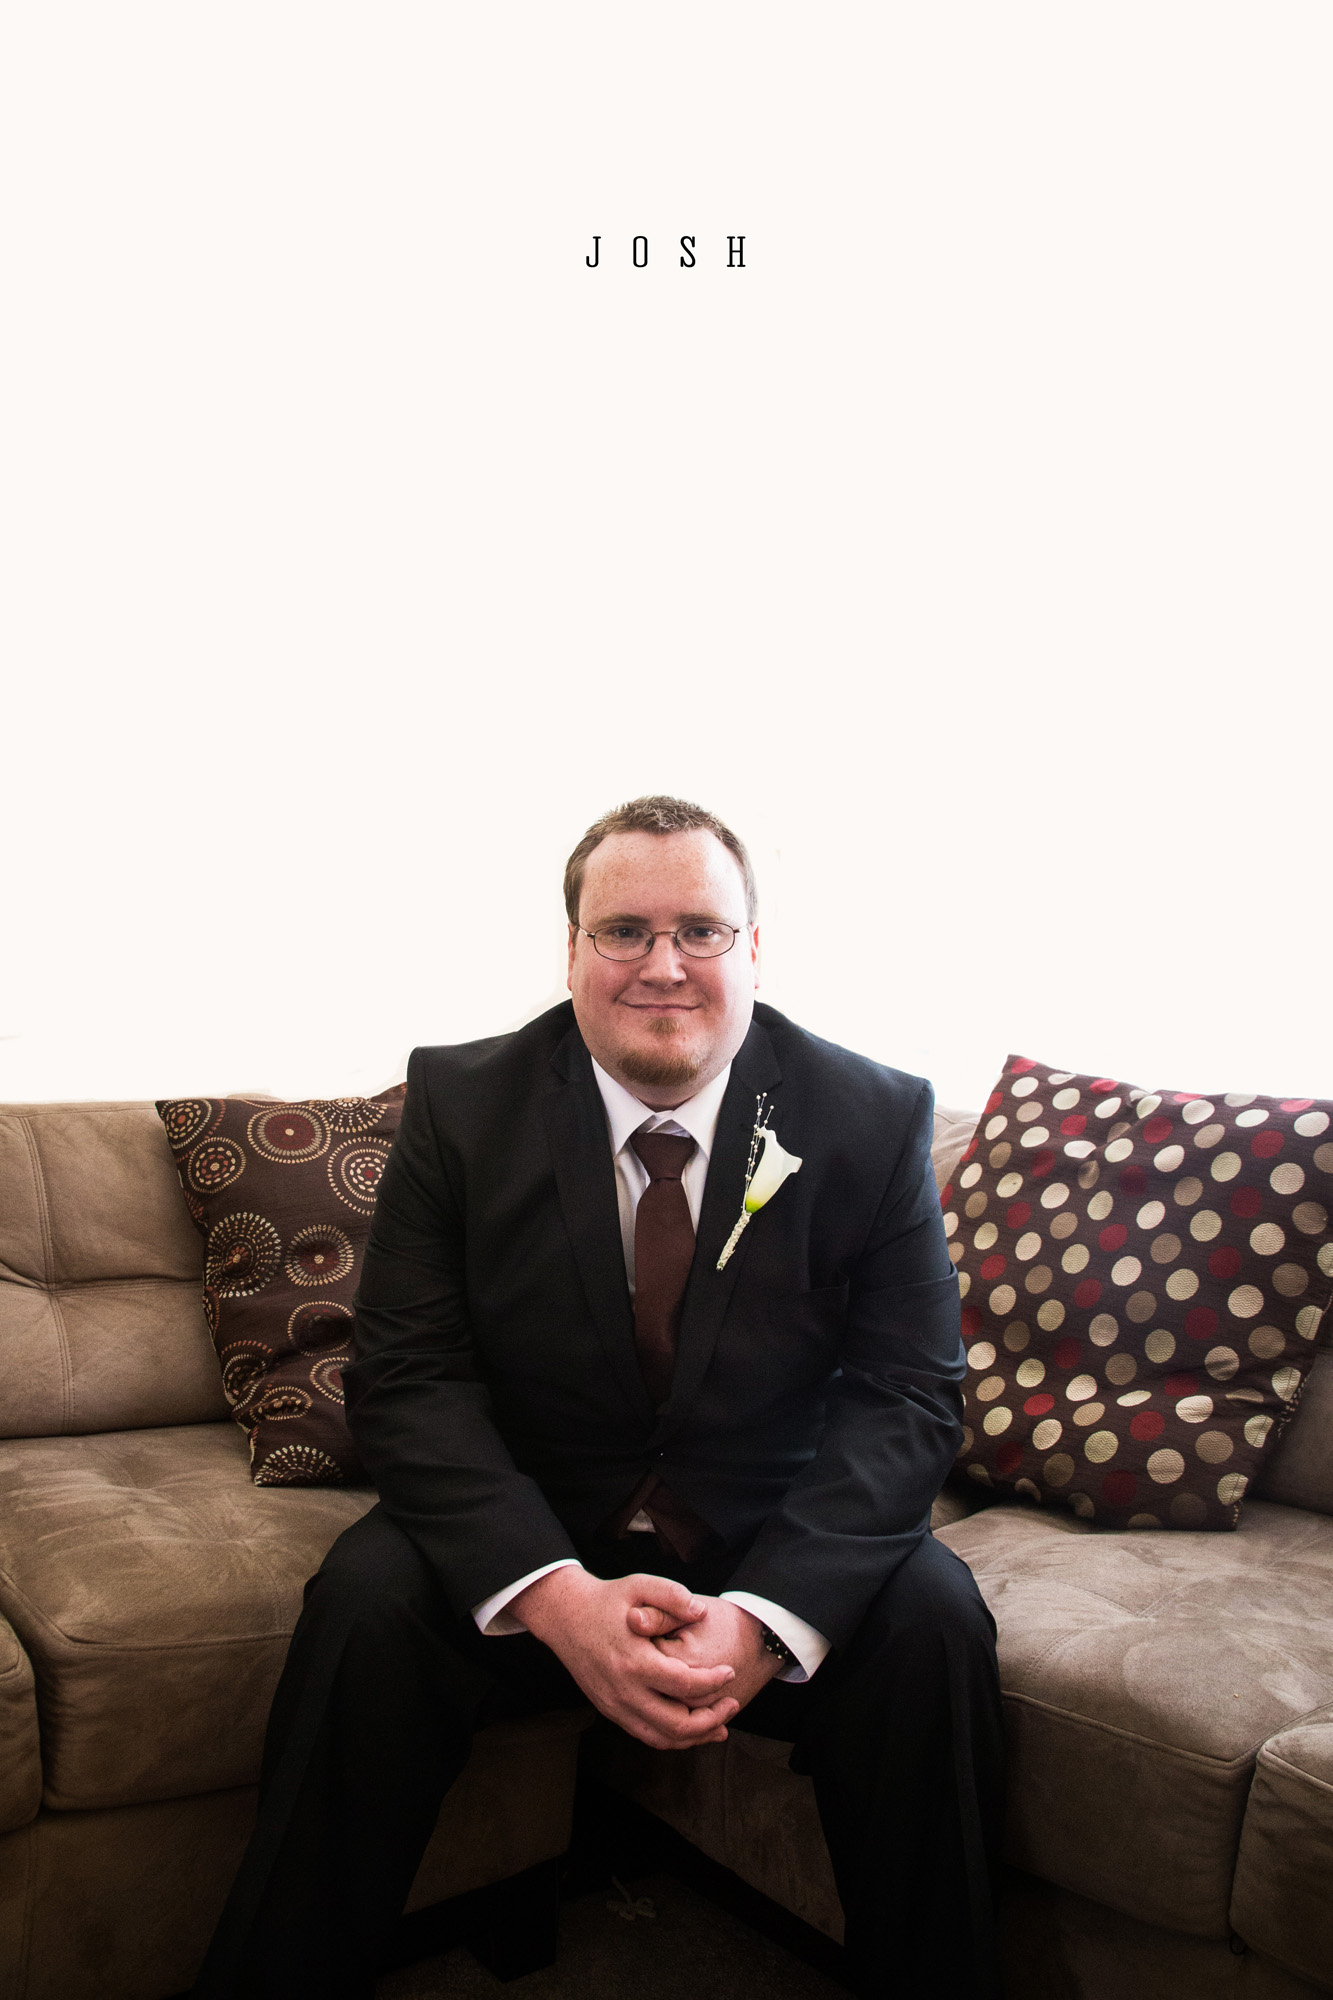 Best man portrait on couch